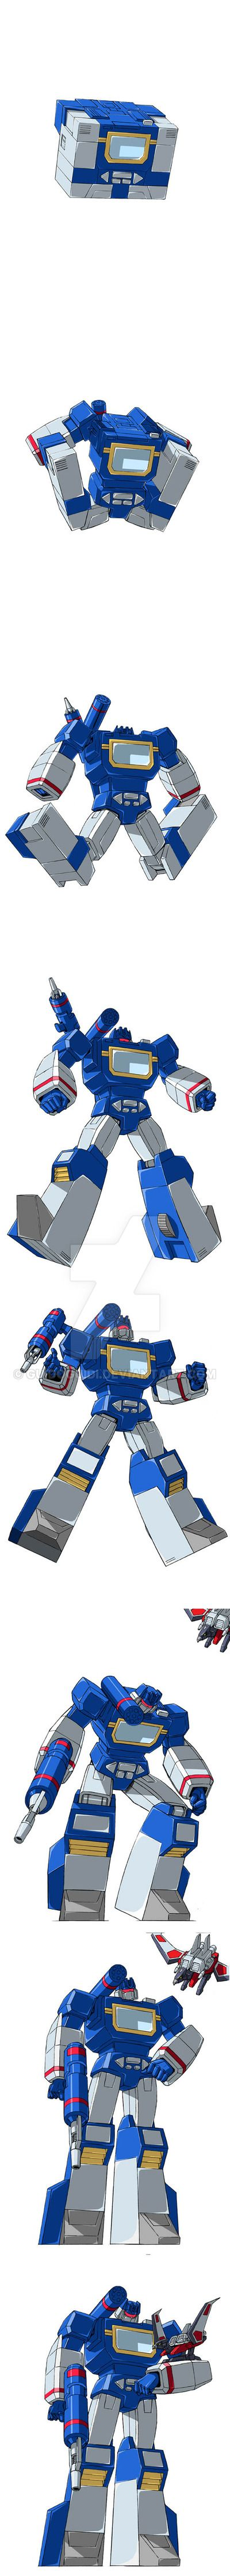 Soundwave - Transformation by GuidoGuidi on DeviantArt